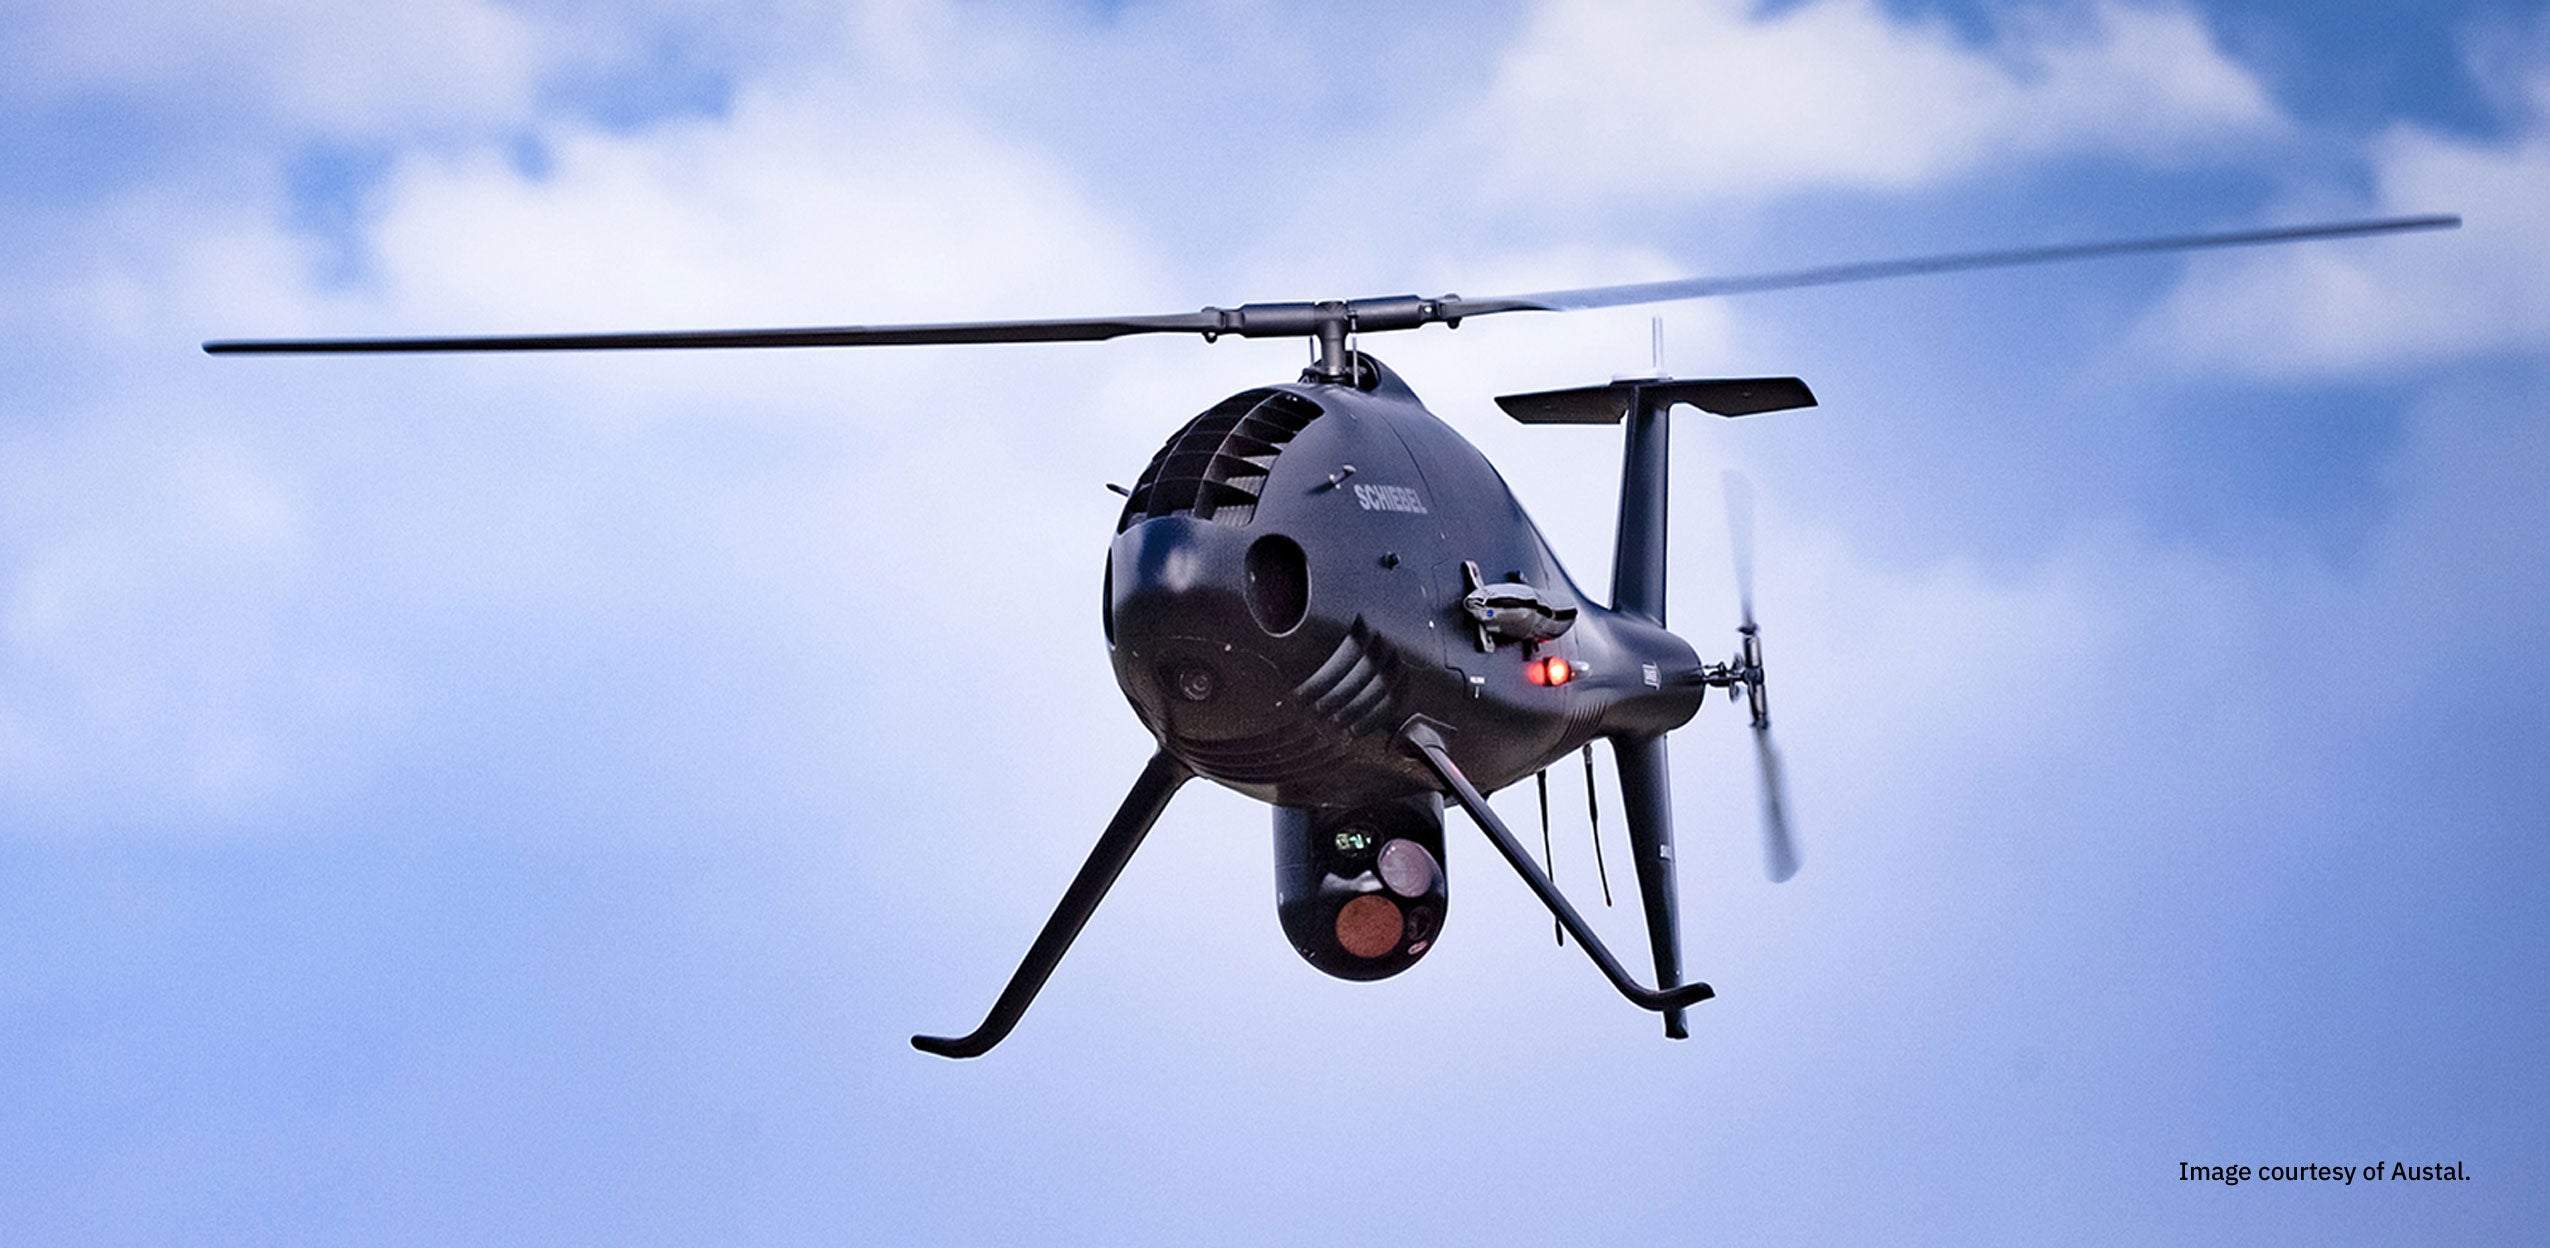 The CAMCOPTER® S-100